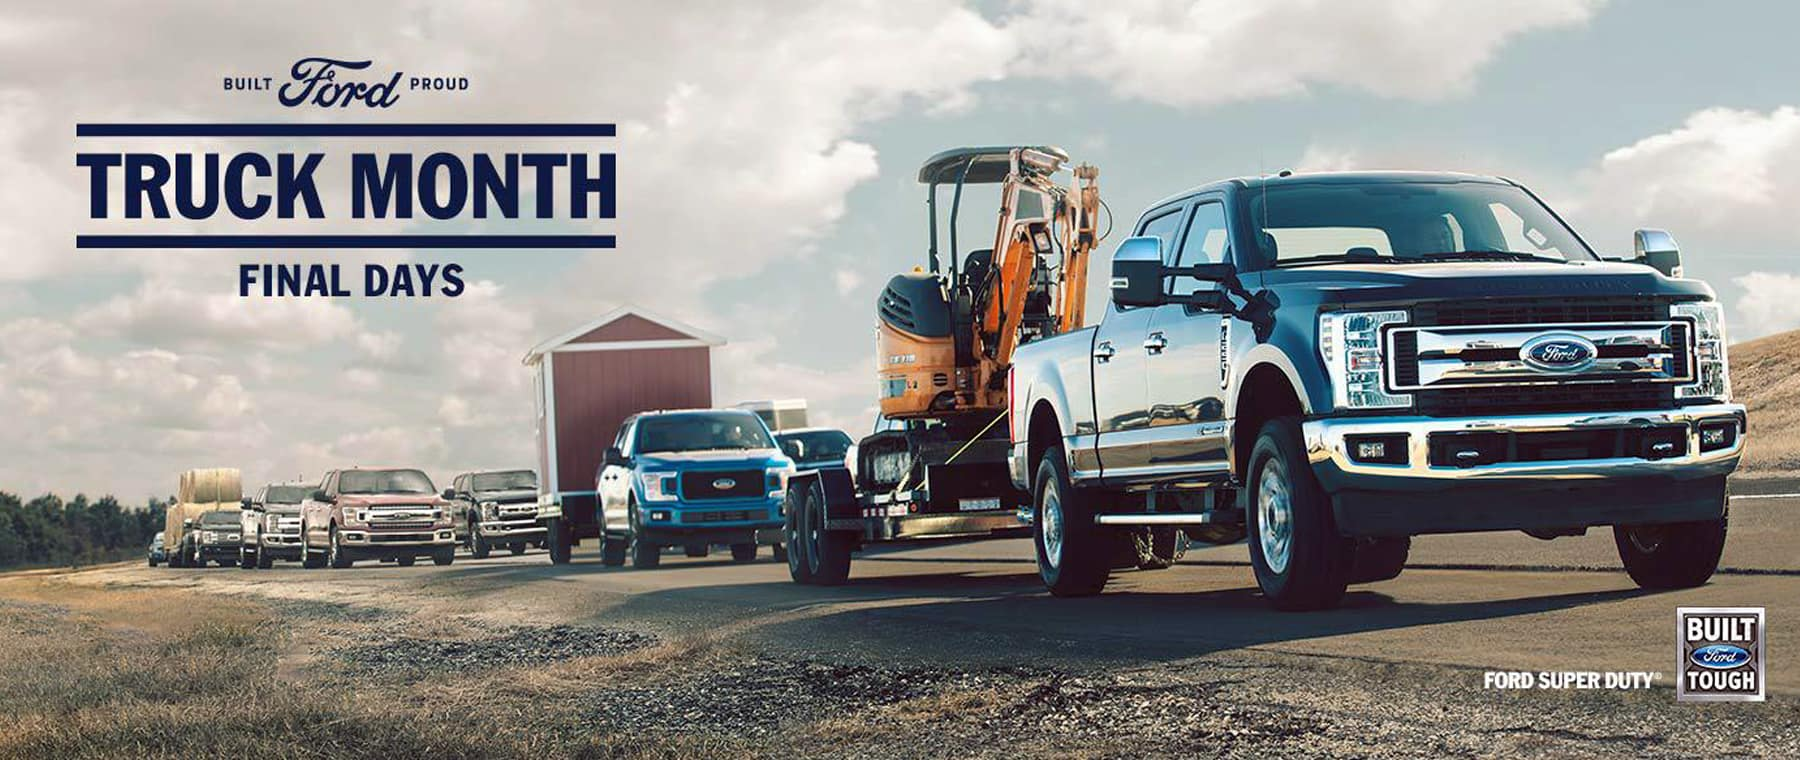 ford truck month banner-oct 2019